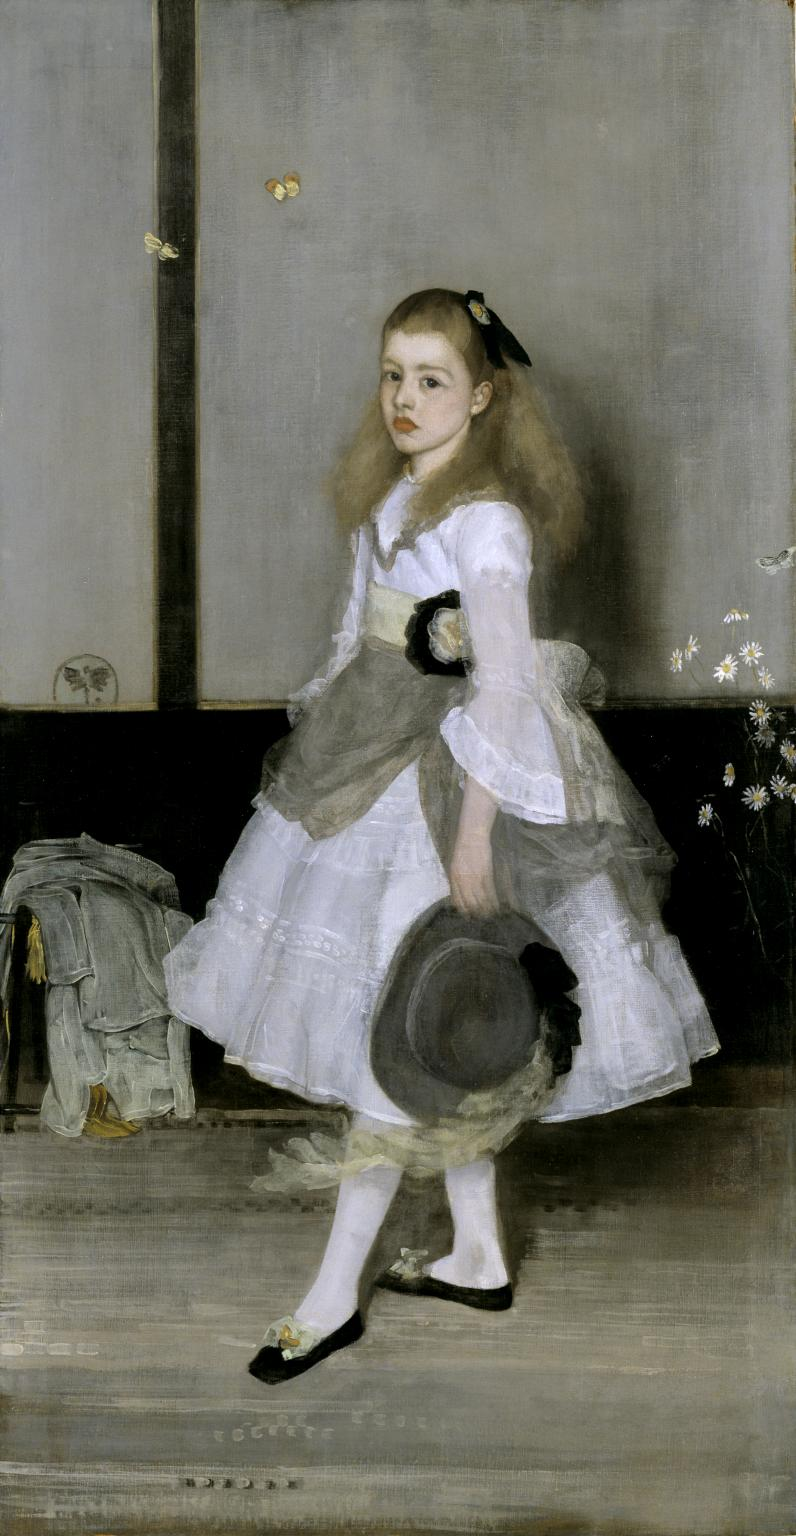 https://i0.wp.com/upload.wikimedia.org/wikipedia/commons/e/ea/Whistler_James_Harmony_in_Grey_and_Green_Miss_Cicely_Alexander_1873.jpg